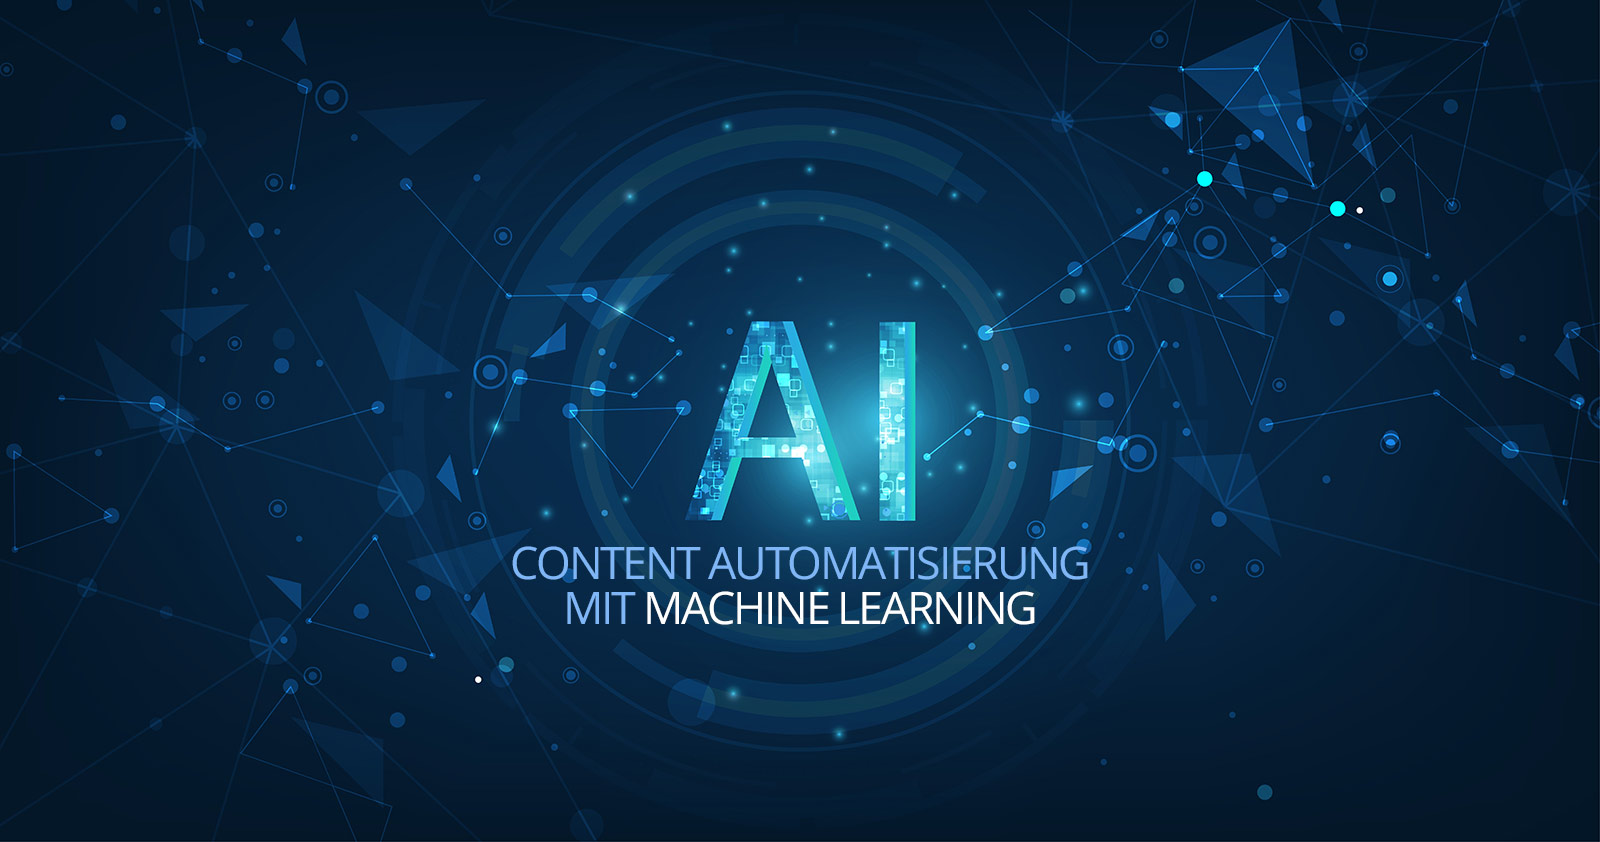 content-automatisierung-machine-learning